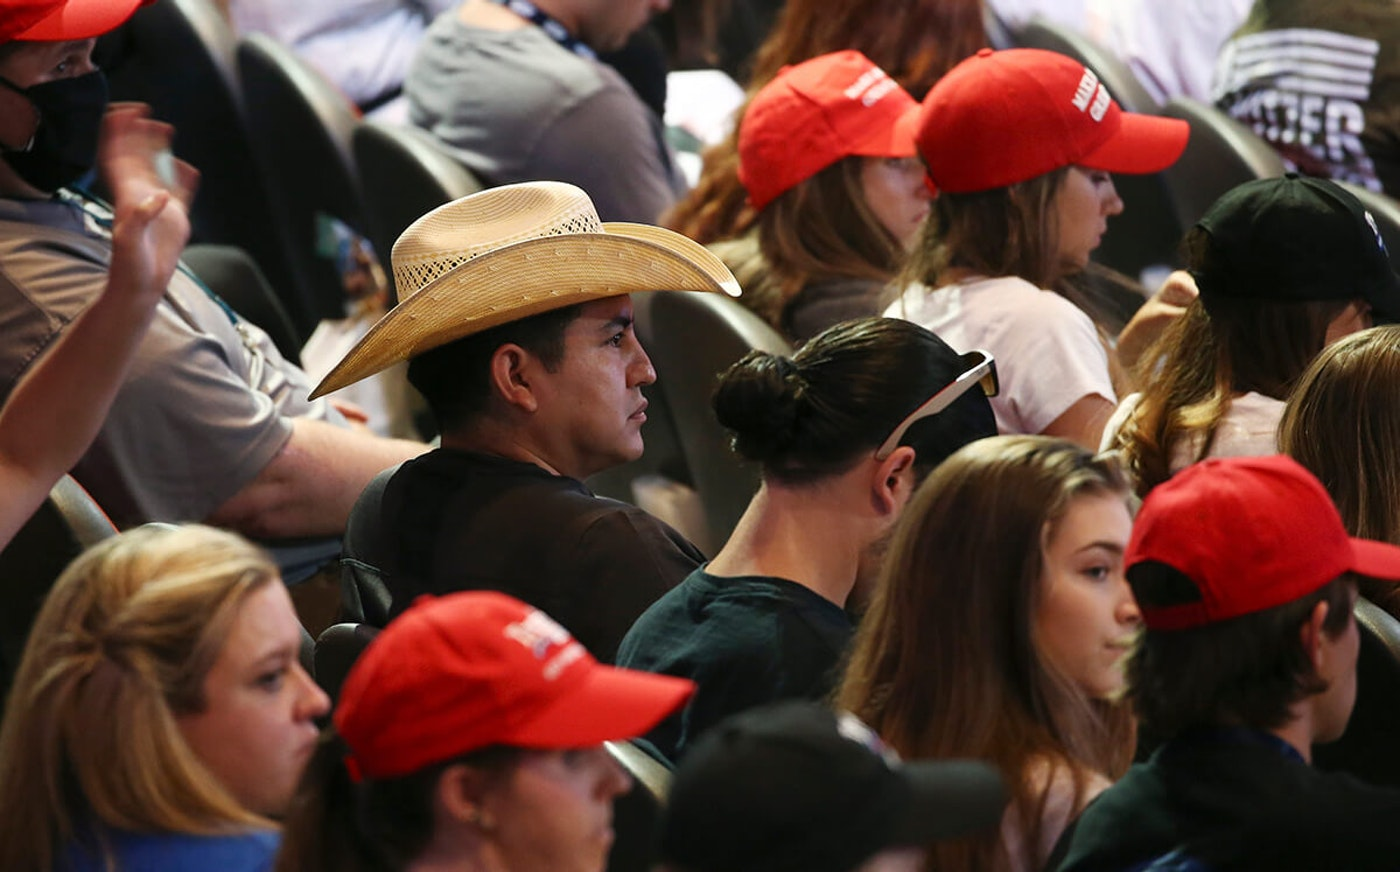 crowd at Trump rally in Phoenix showing only one person wearing a mask